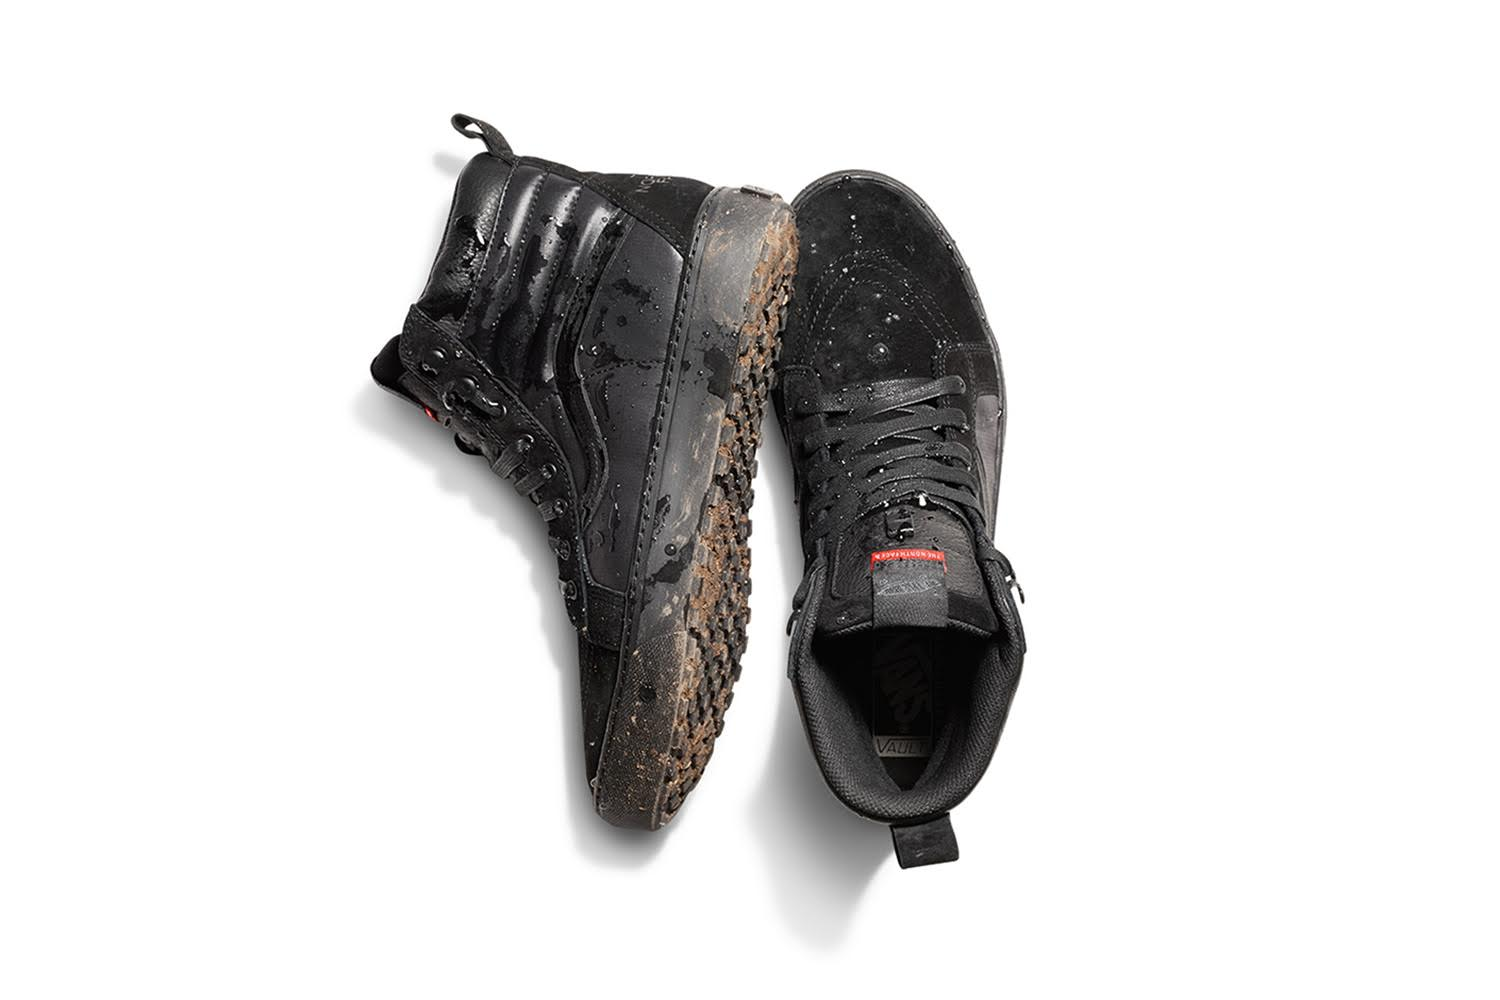 5e668c5fd2f0 The Vault by Vans x The North Face partnership brings forth the Desert  Chukka MTE LX in Black